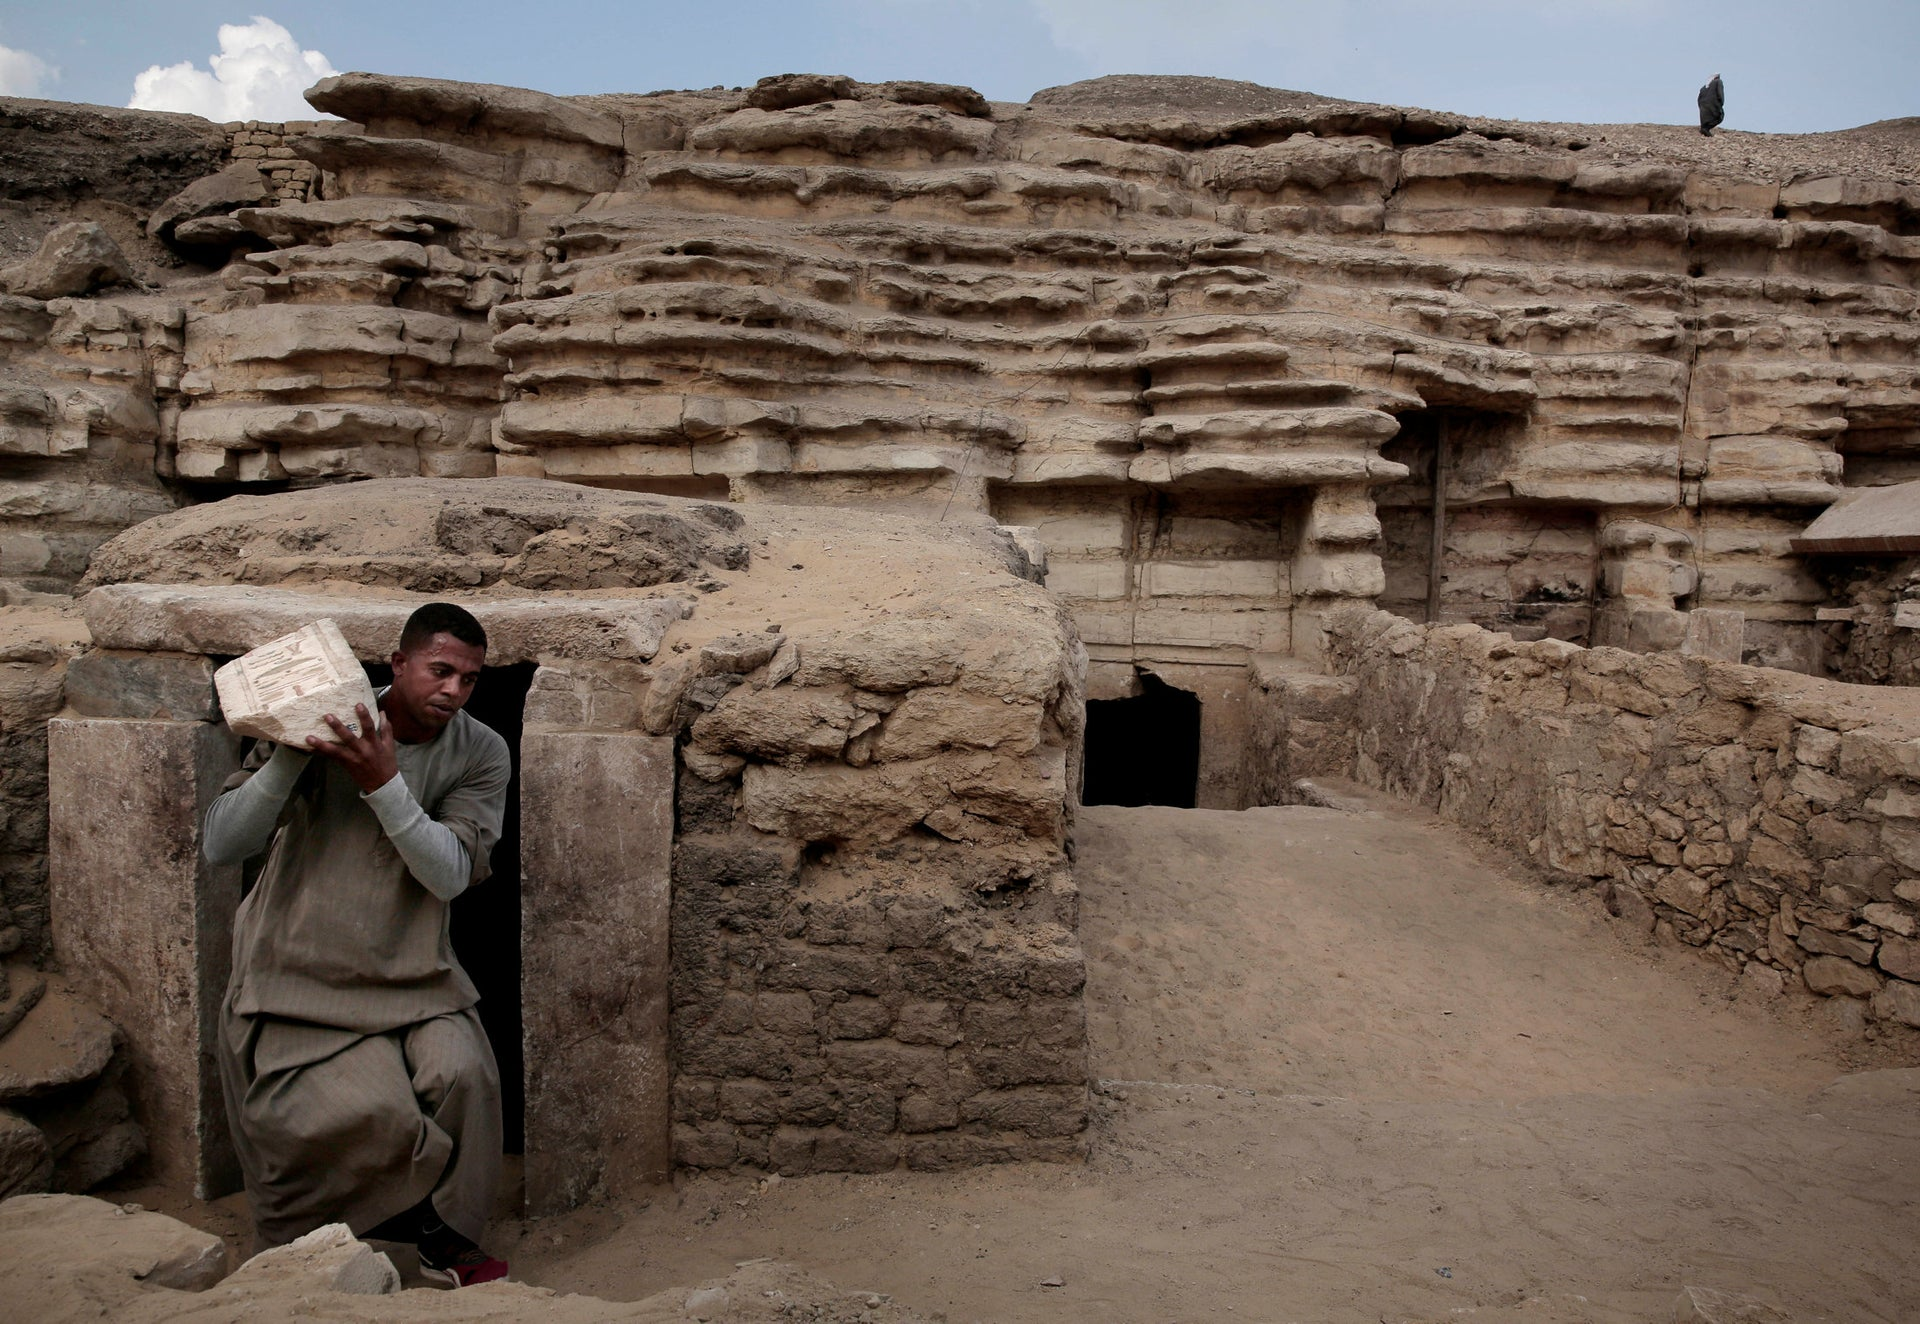 A worker carries an artifact out of a tomb, at an ancient necropolis near Egypt's famed pyramids in Saqqara, Giza, Egypt, Saturday, Nov. 10, 2018. A top Egyptian antiquities official says local archaeologists have discovered seven Pharaonic Age tombs near the capital Cairo containing dozens of cat mummies along with wooden statues depicting other animals.